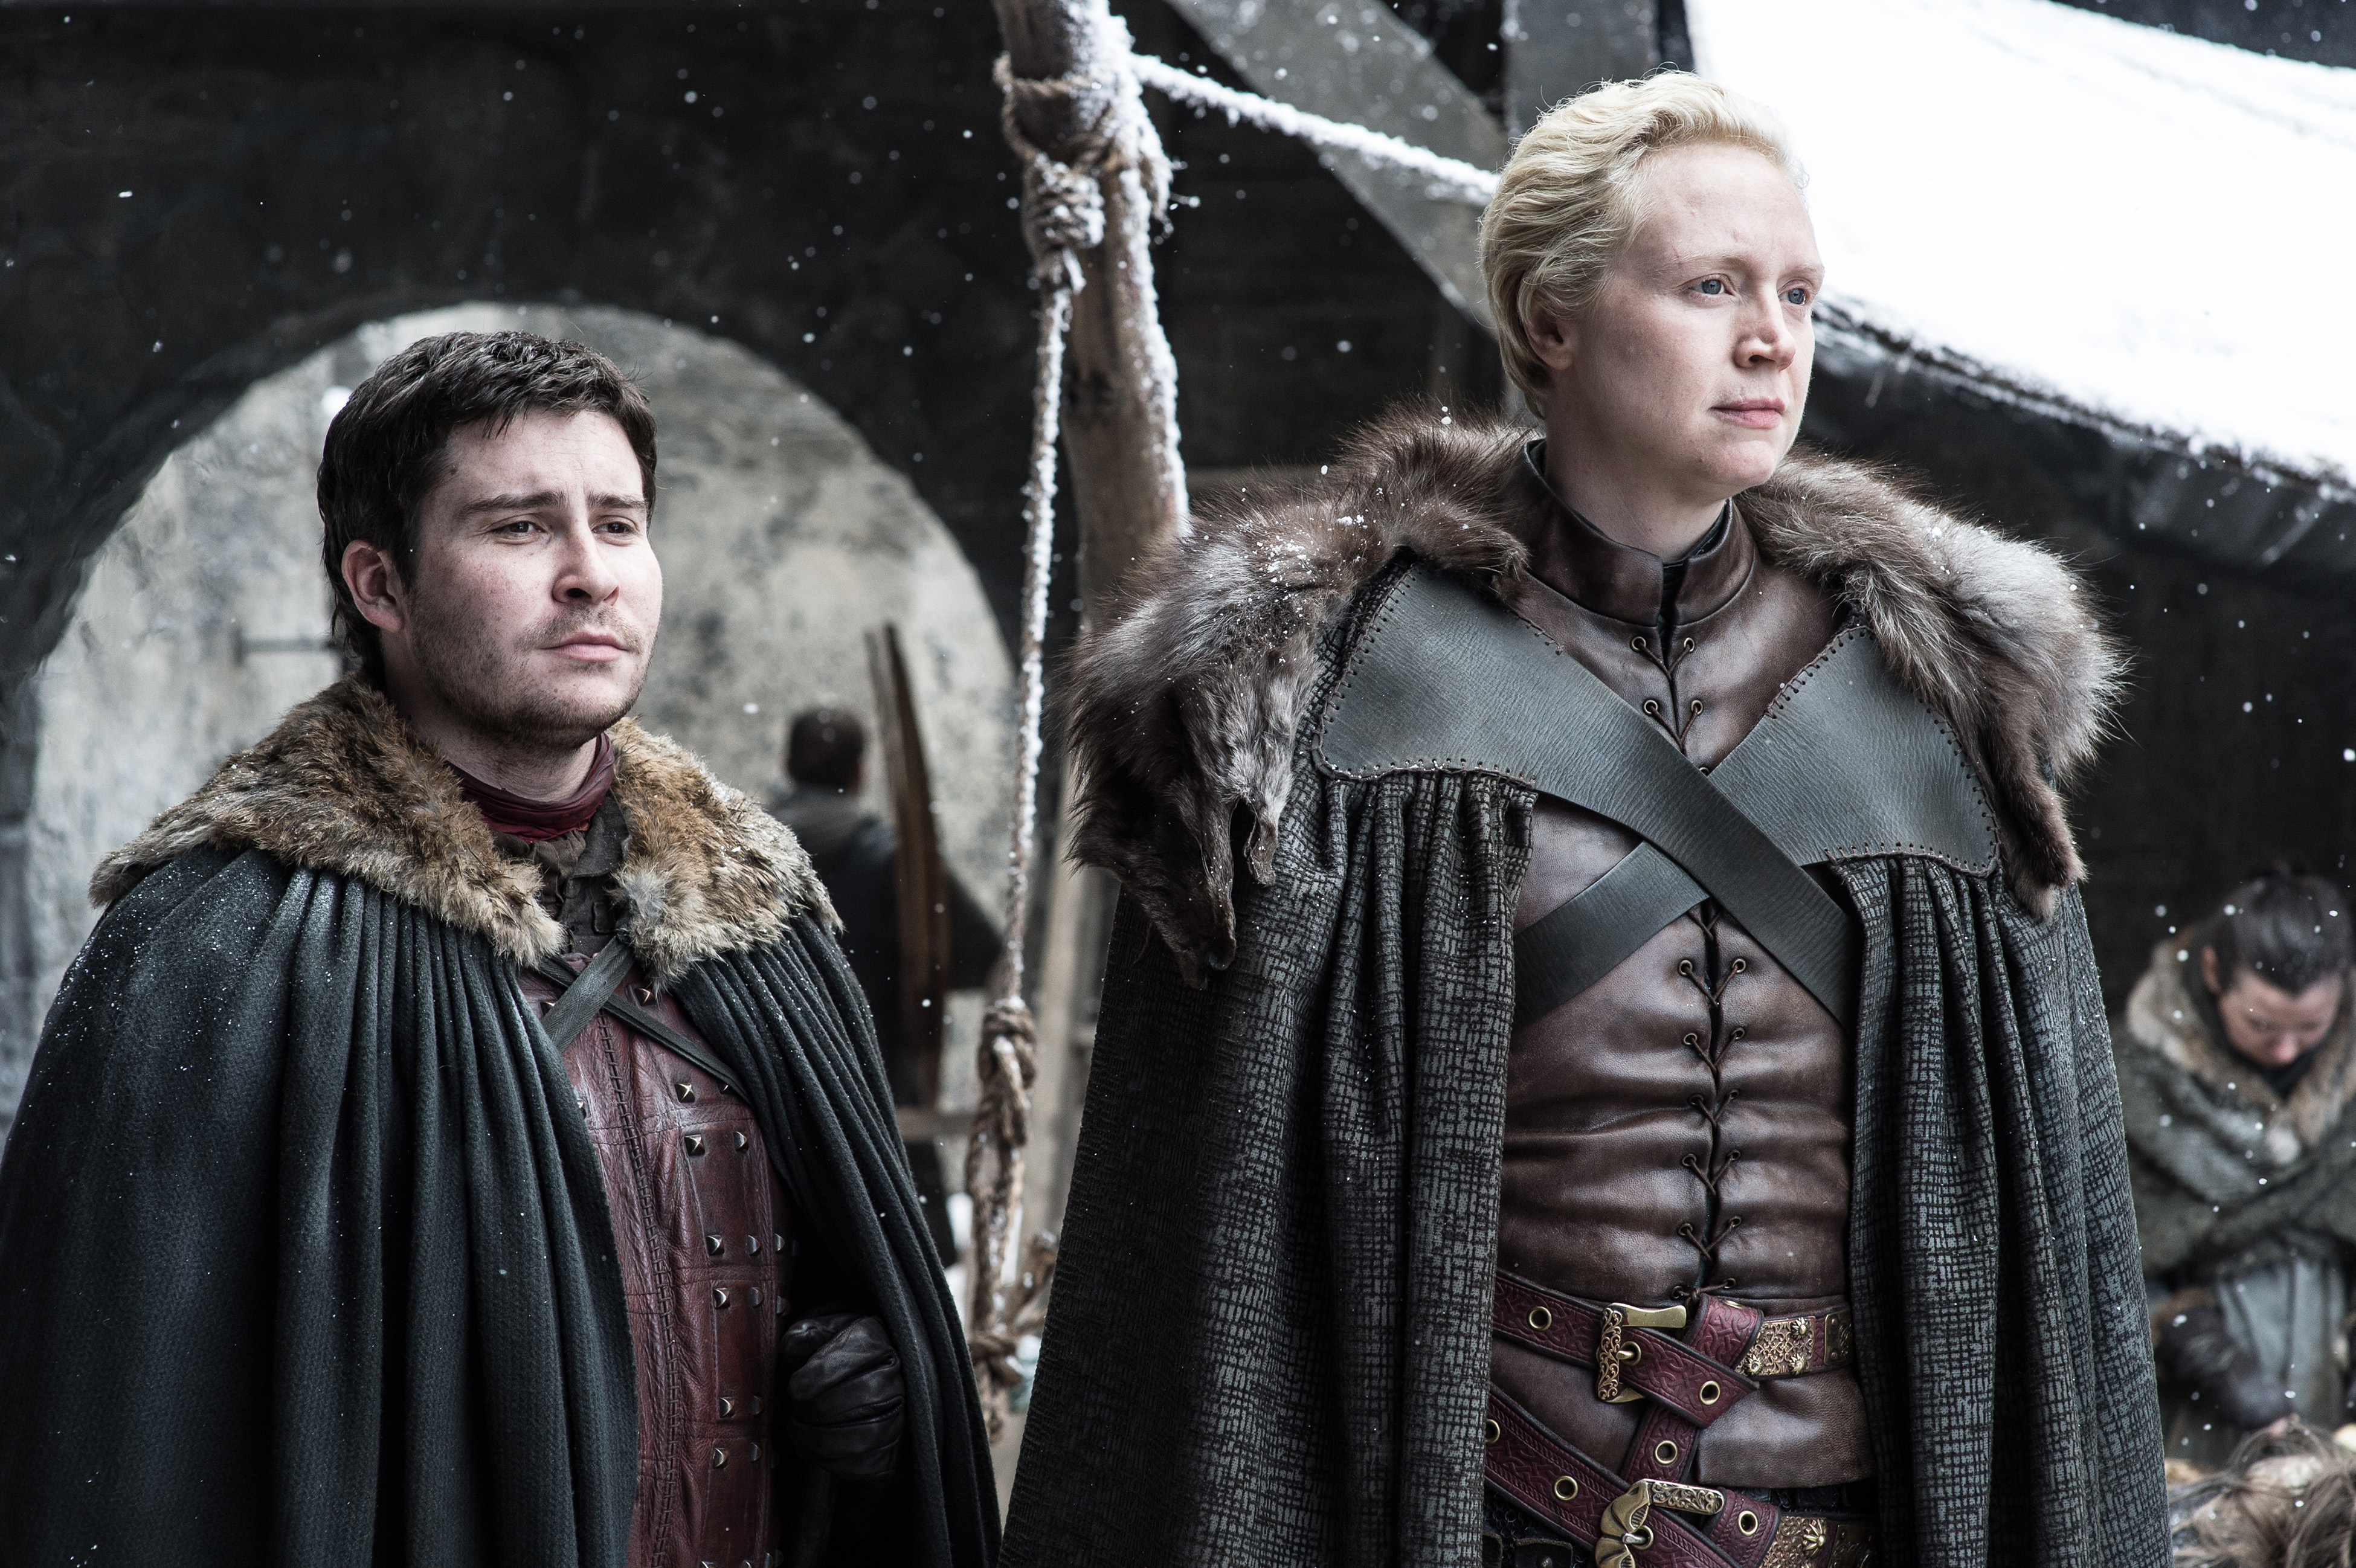 Daniel Portman as Podrick Payne and Gwendoline Christie as Brienne of Tarth.